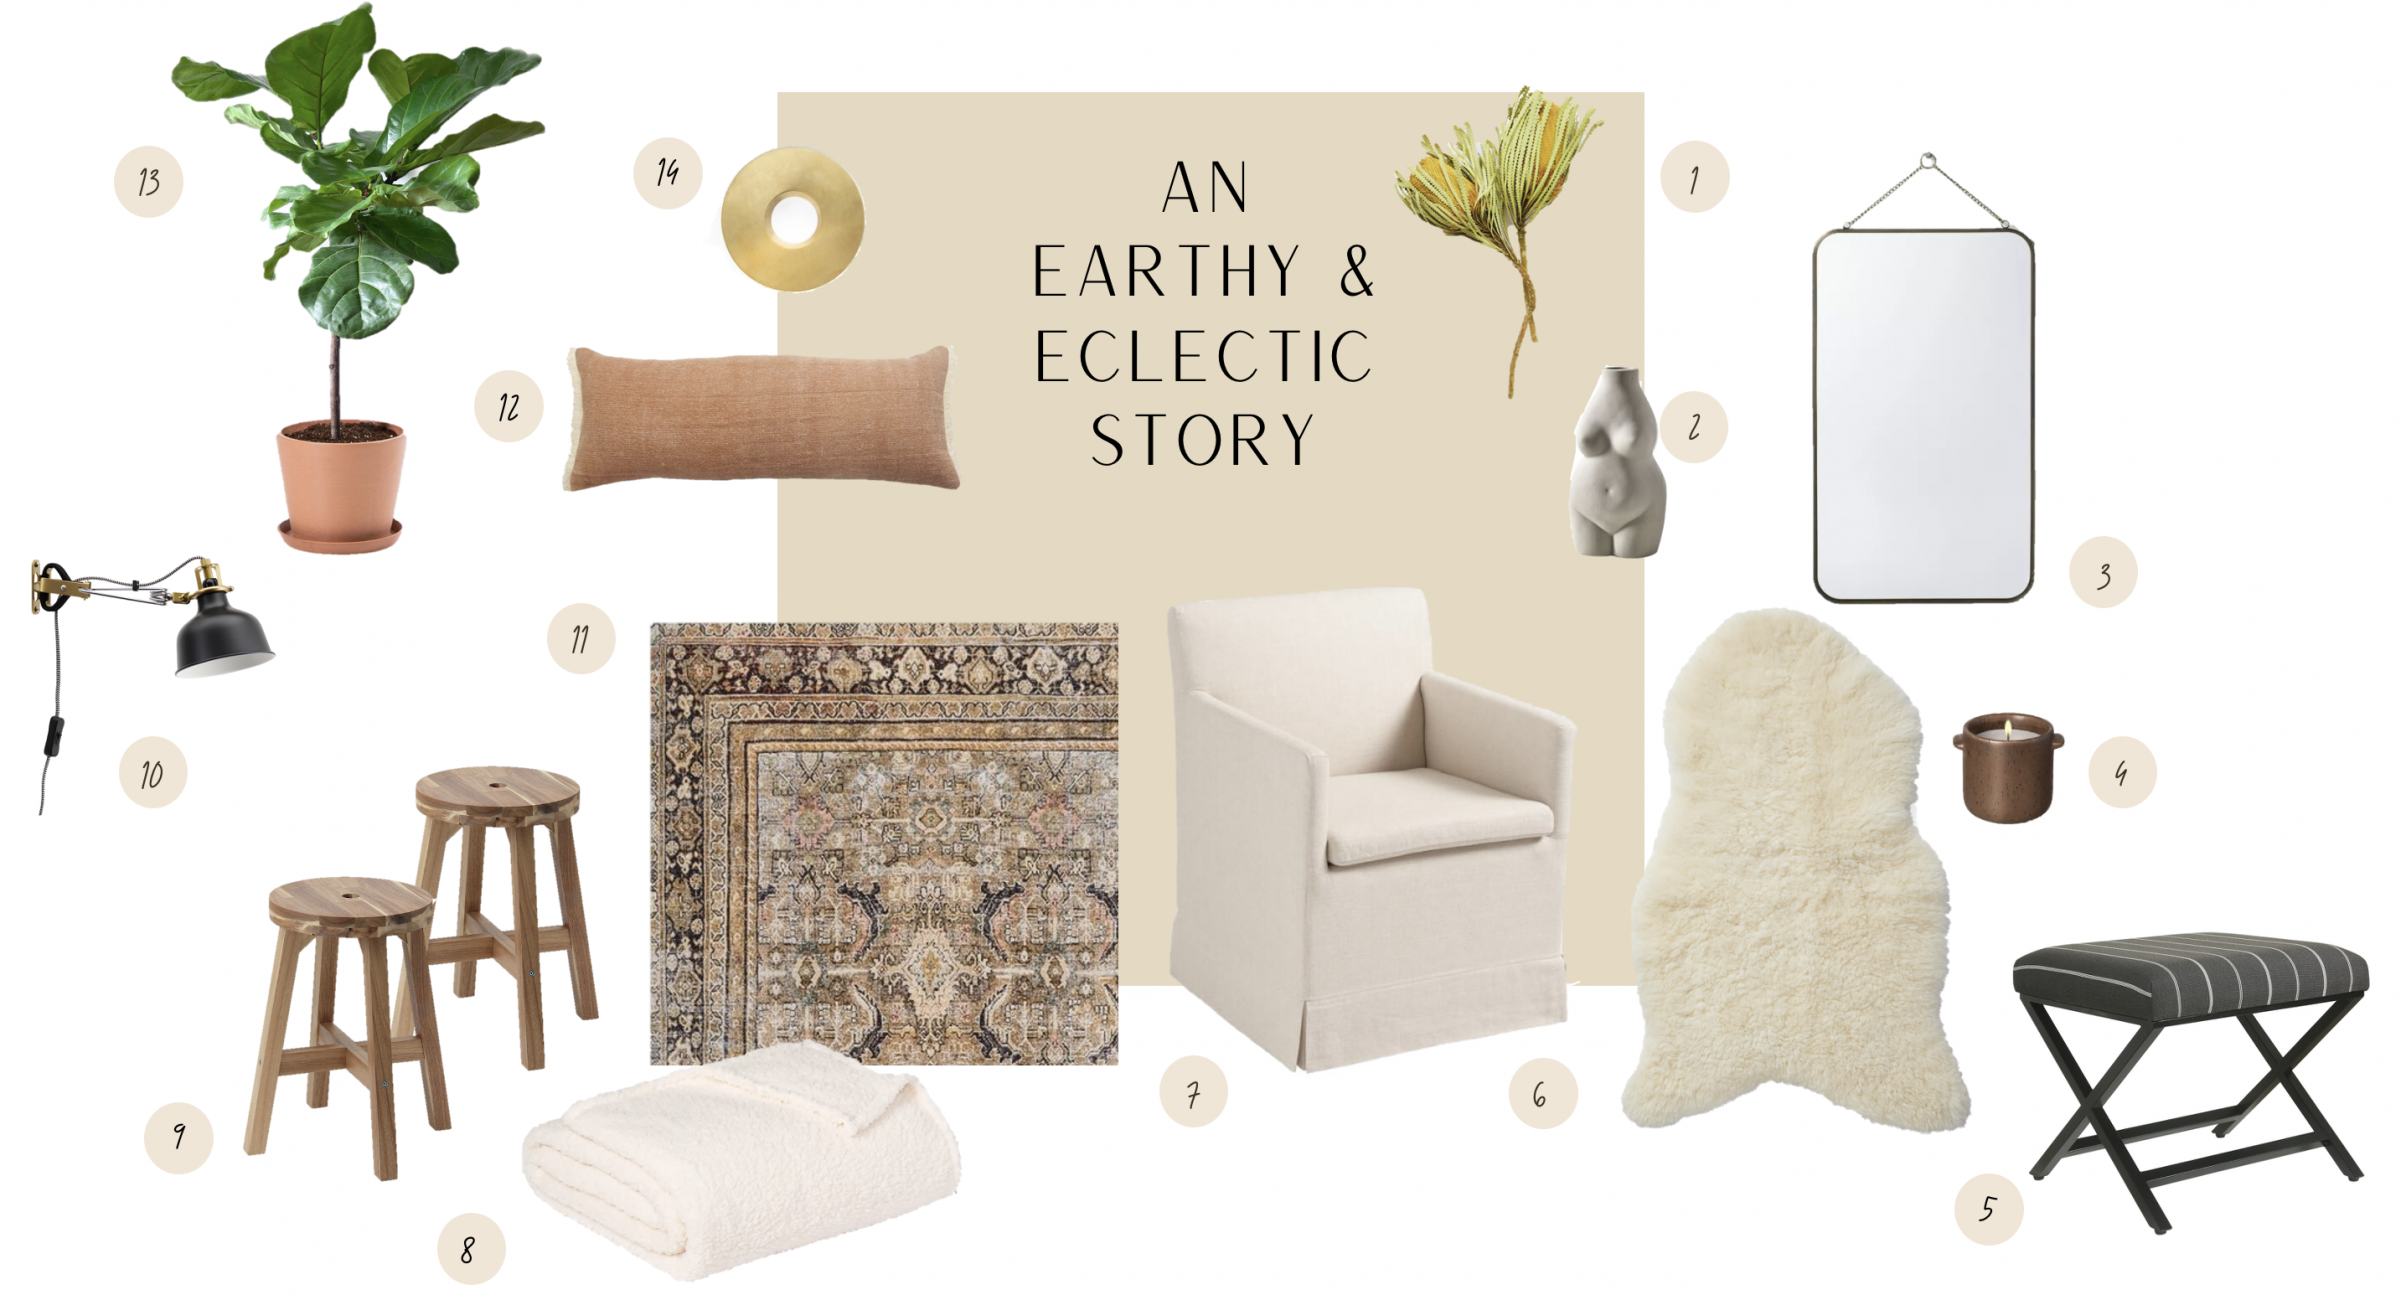 Bedroom Decor Product Roundup, Interior Styling